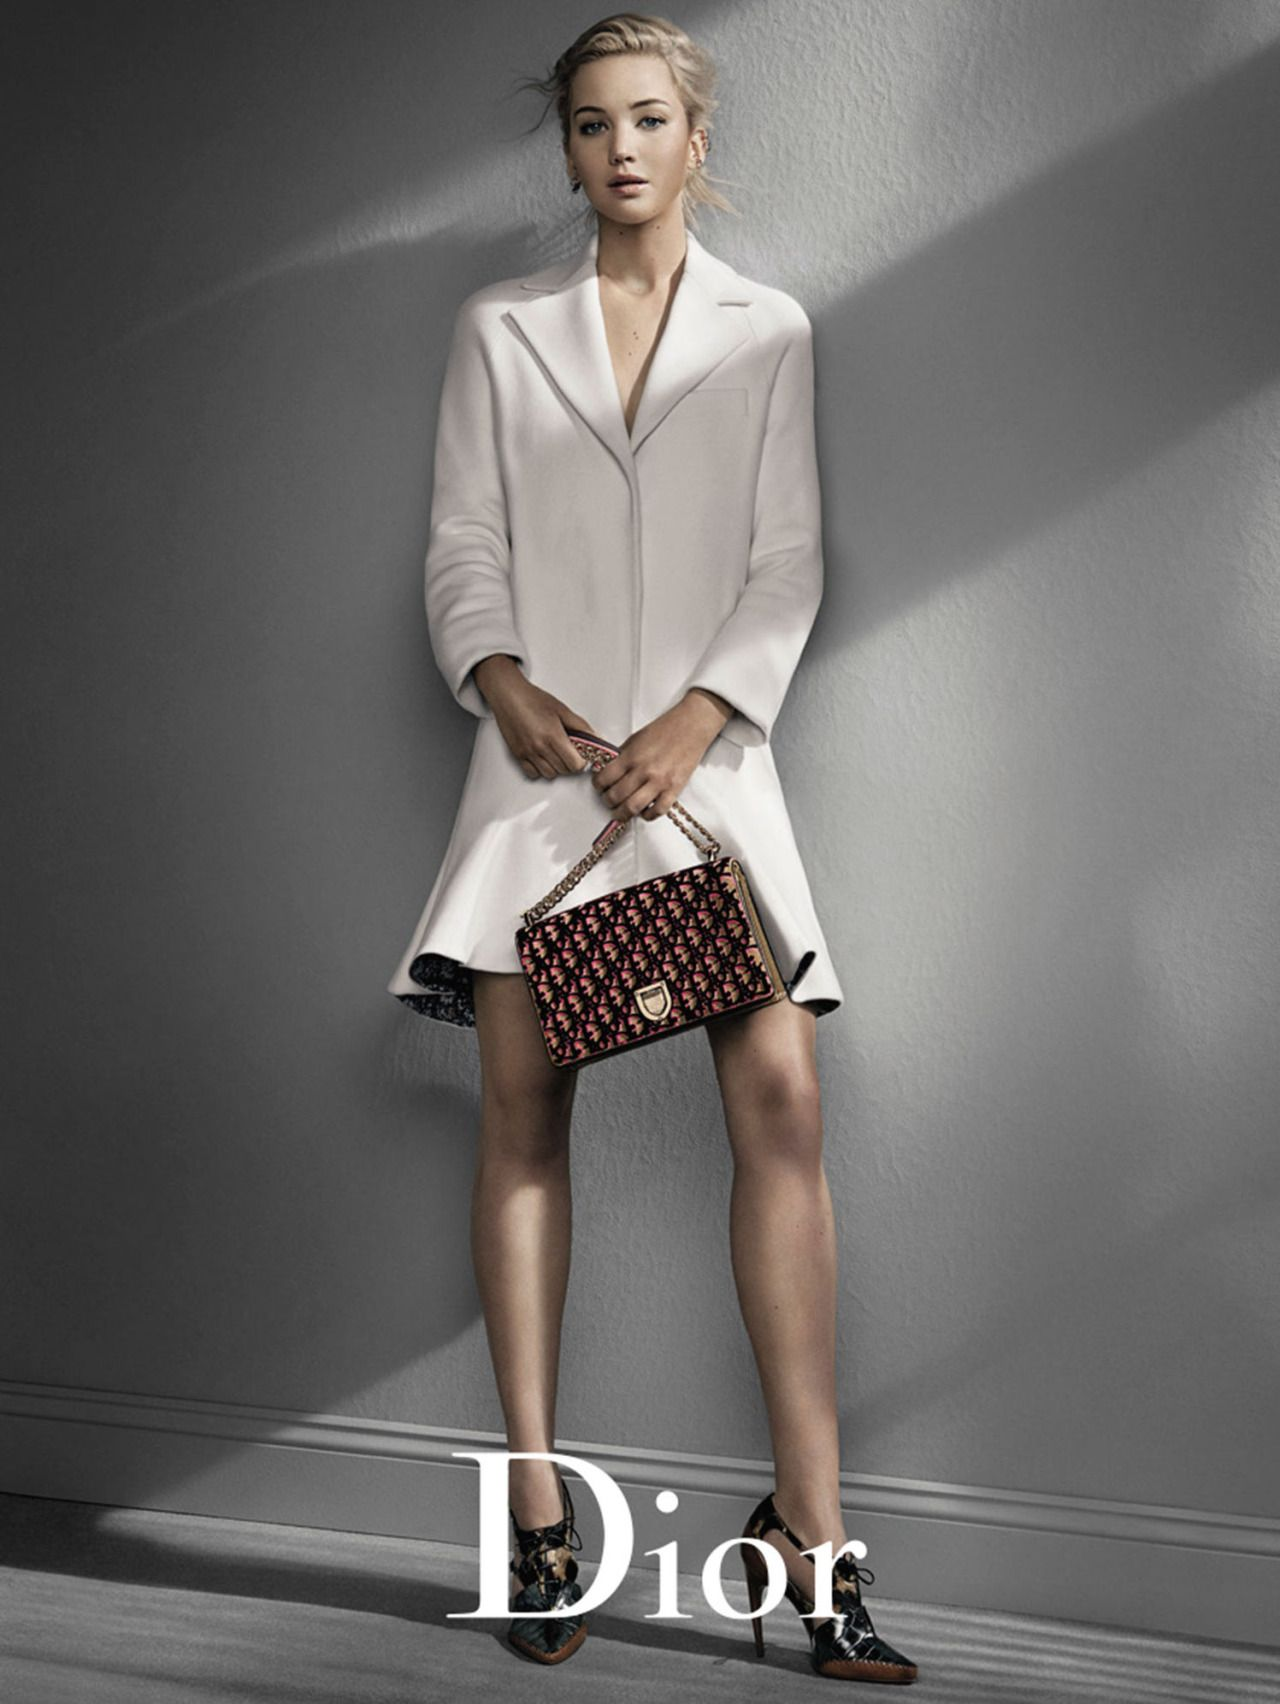 Jennifer Lawrence by Patrick Demarchelier for Dior ...